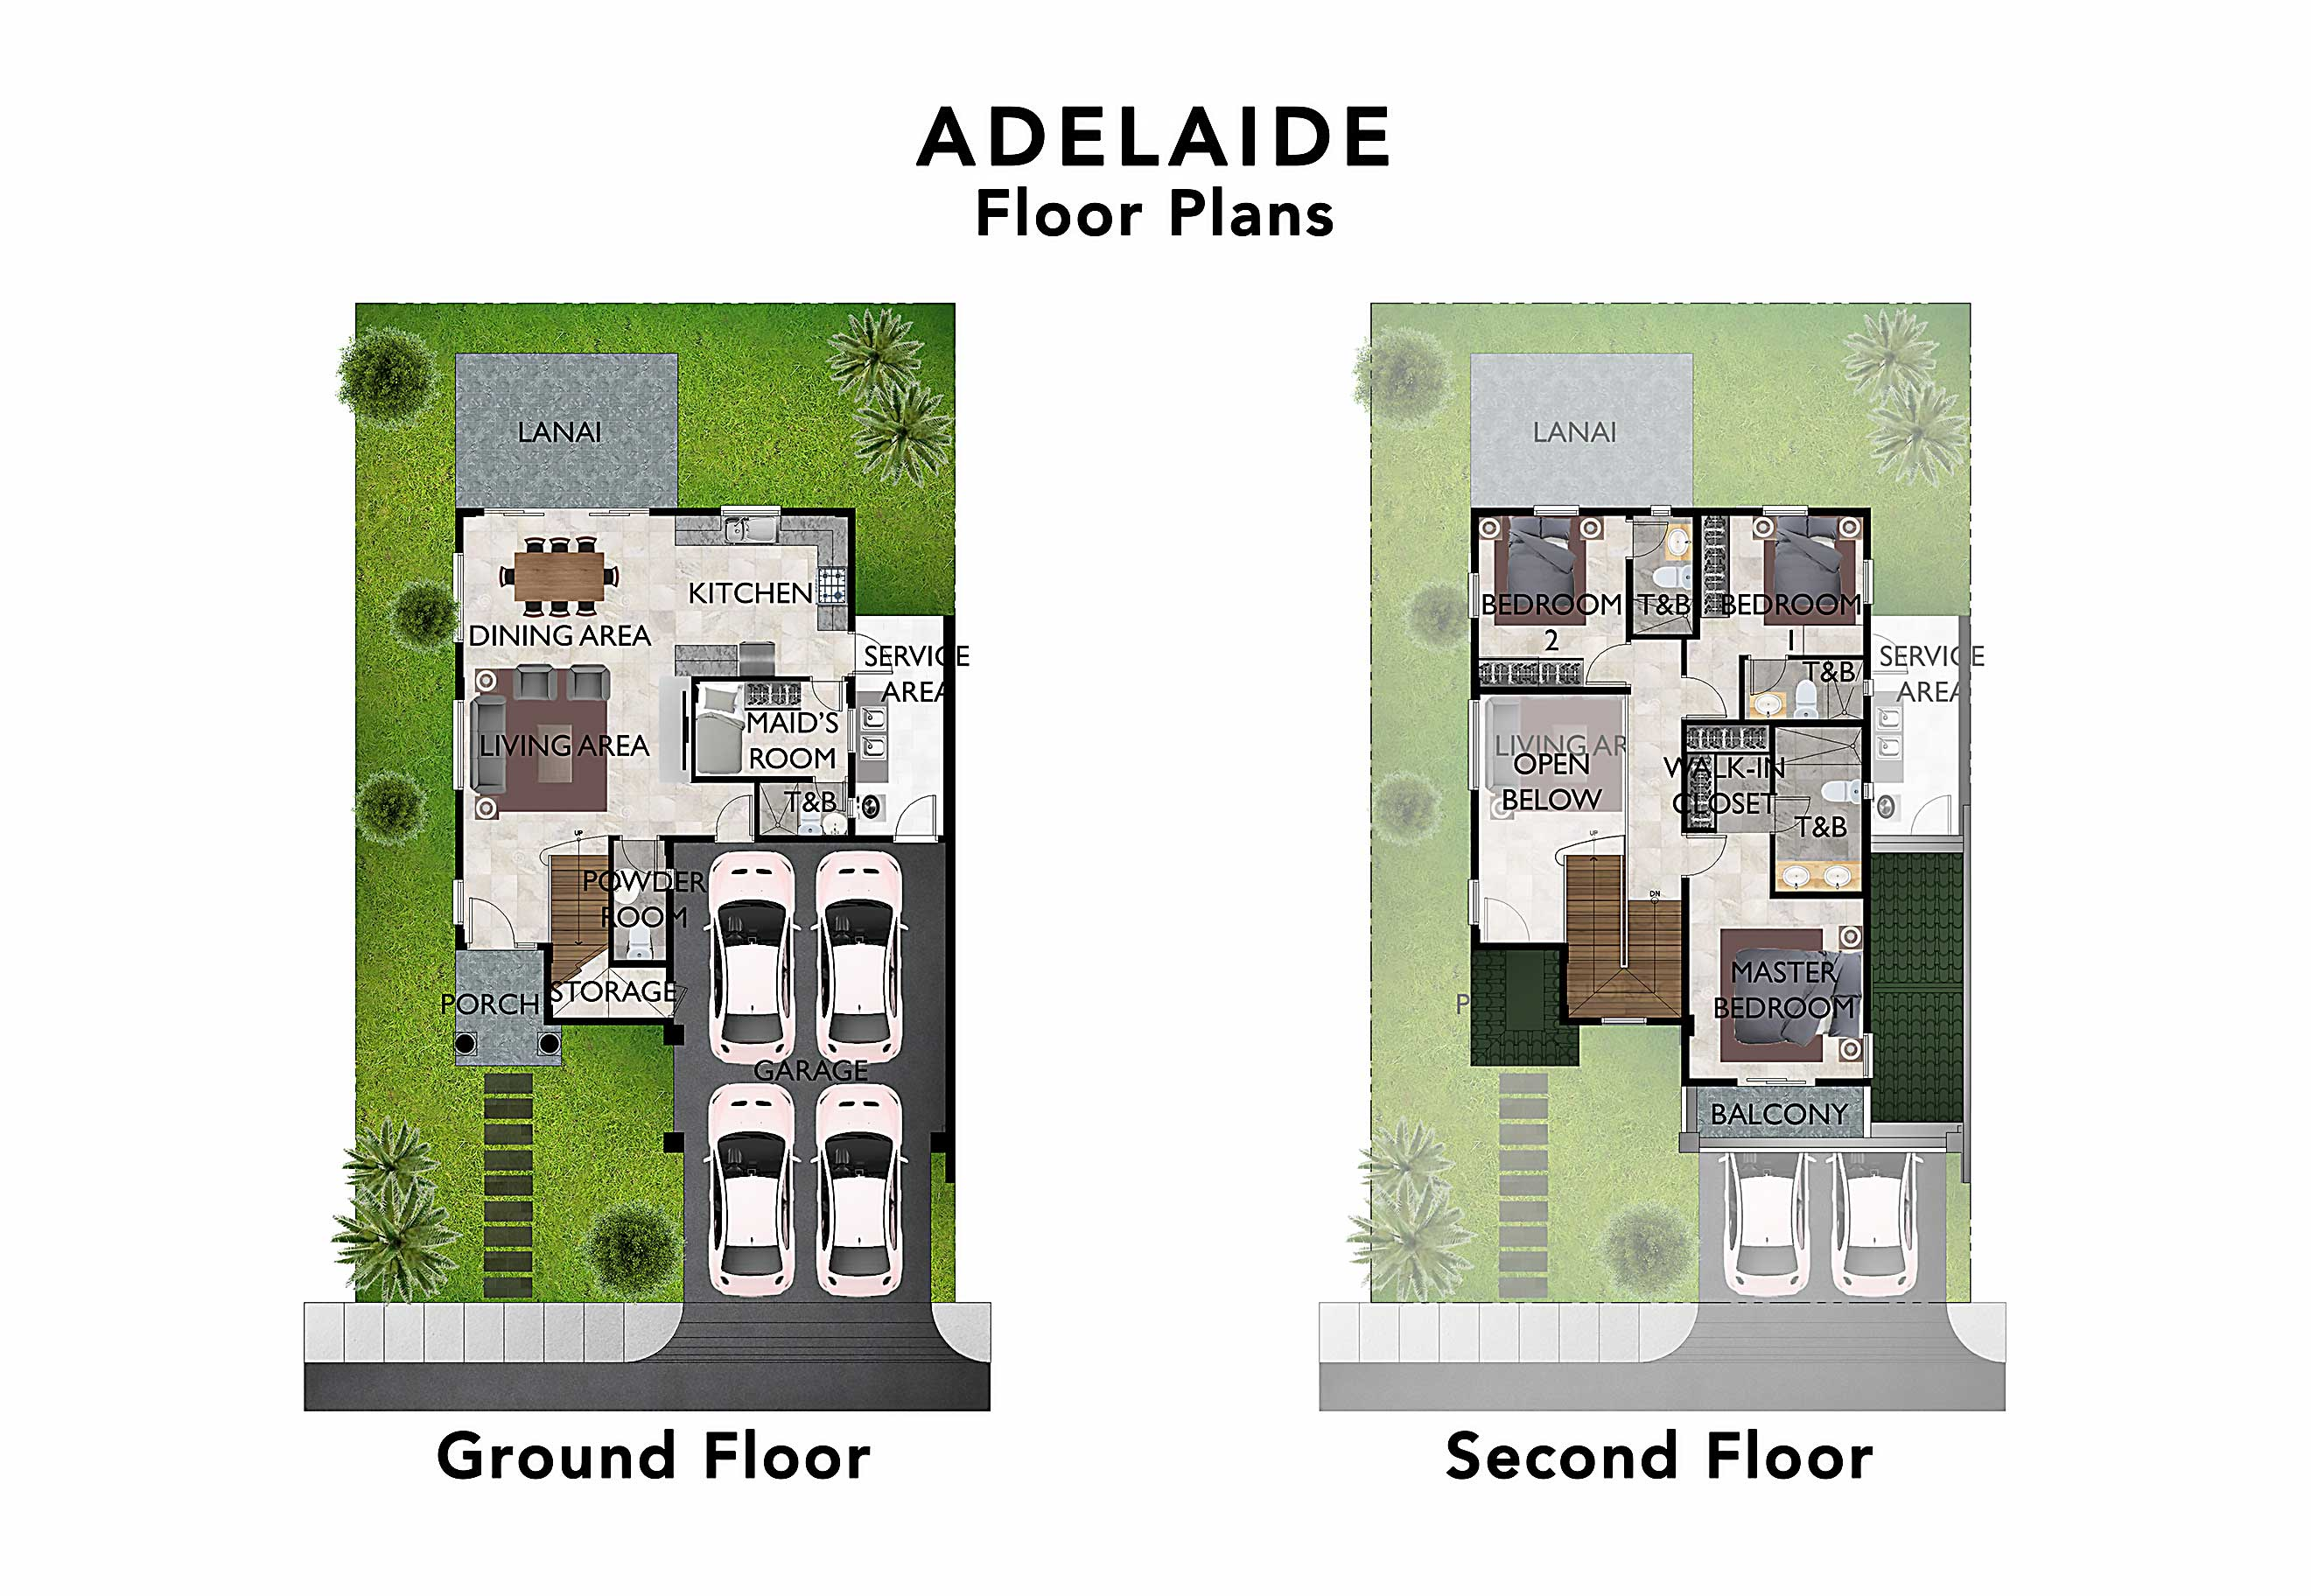 Alabang House for Sale Versailles Adelaide Floor Plans UPDATED 20201217 (saved for web)